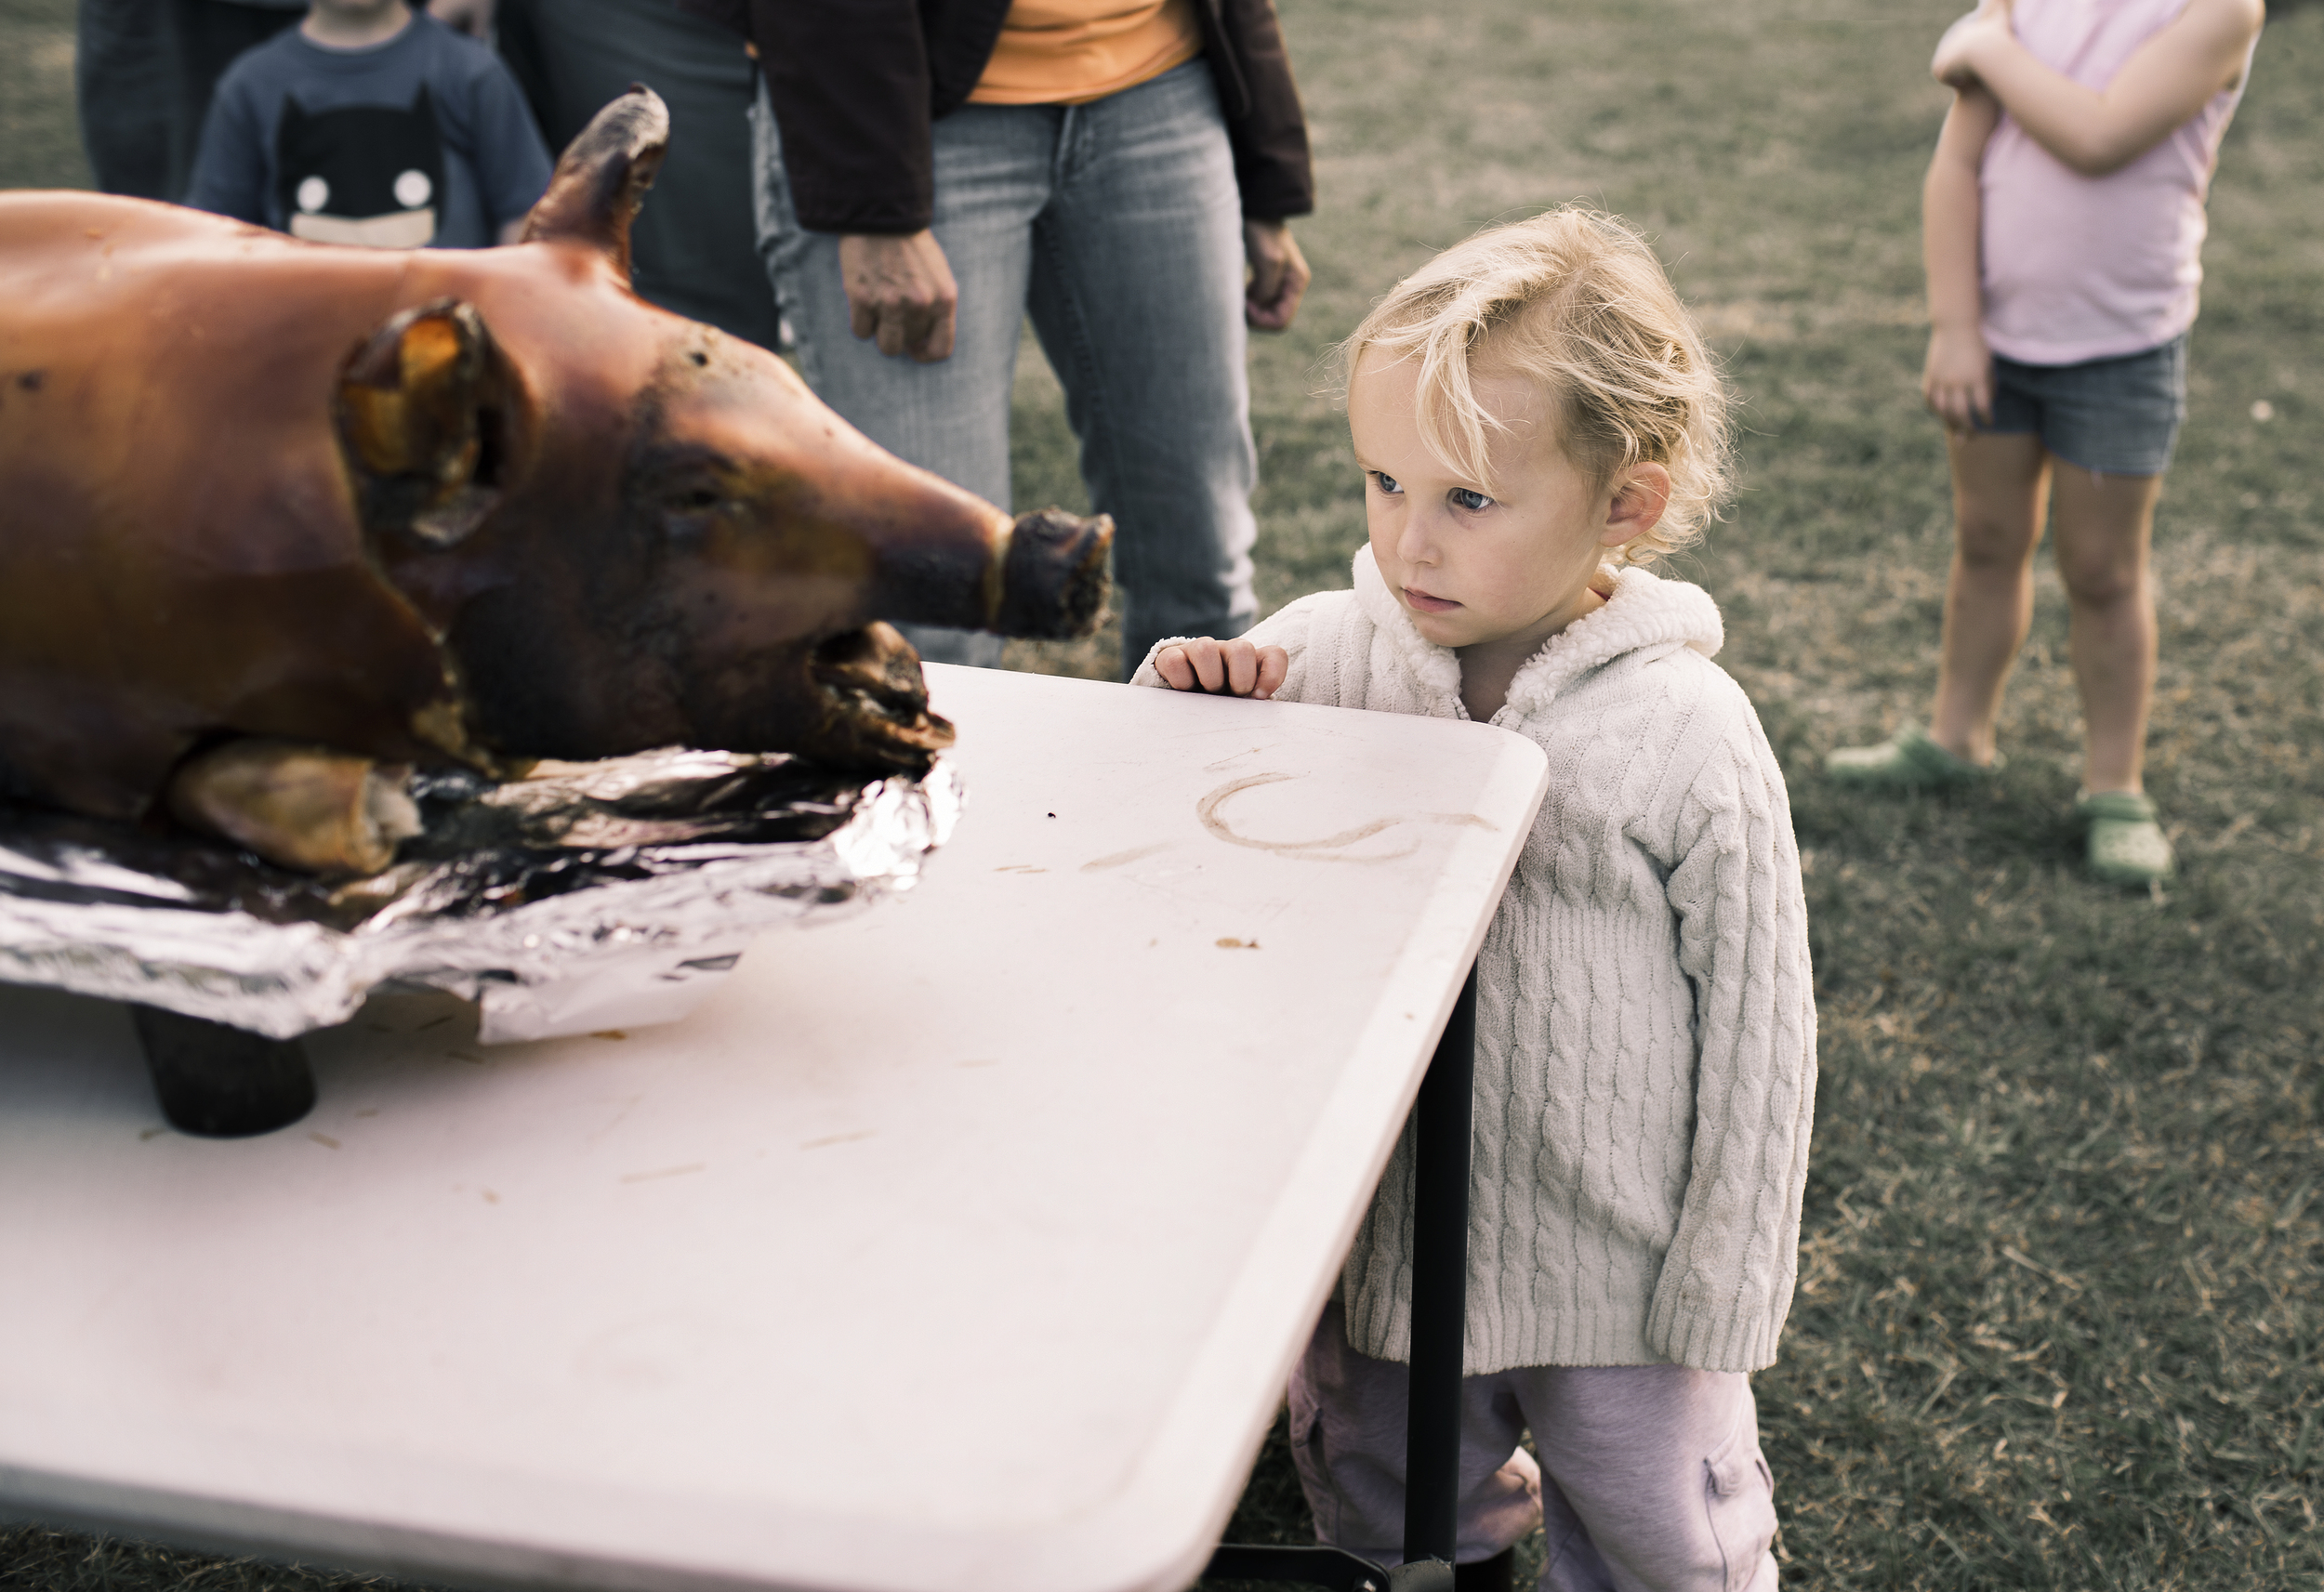 Girl confronting pig, Tamara Reynolds, Southern Route